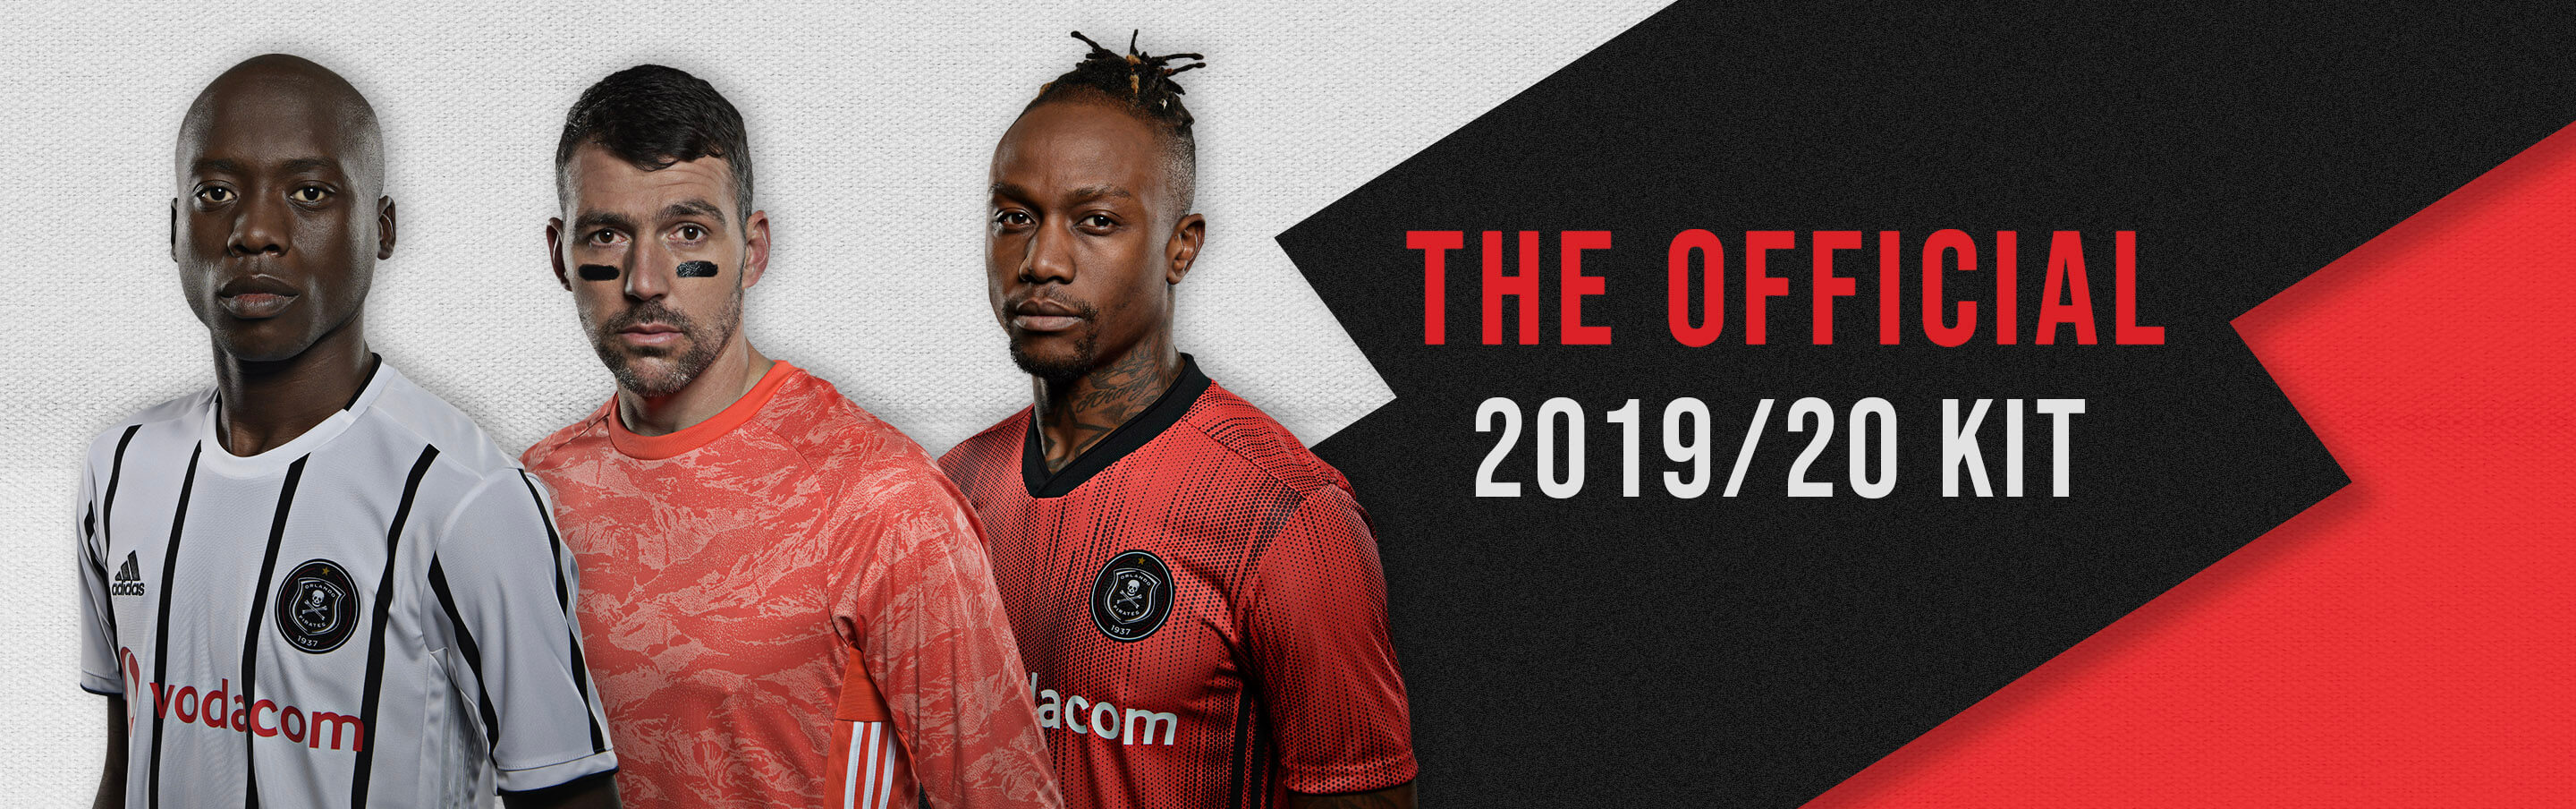 Orlando Pirates Football Club | Official Online Store - Shop